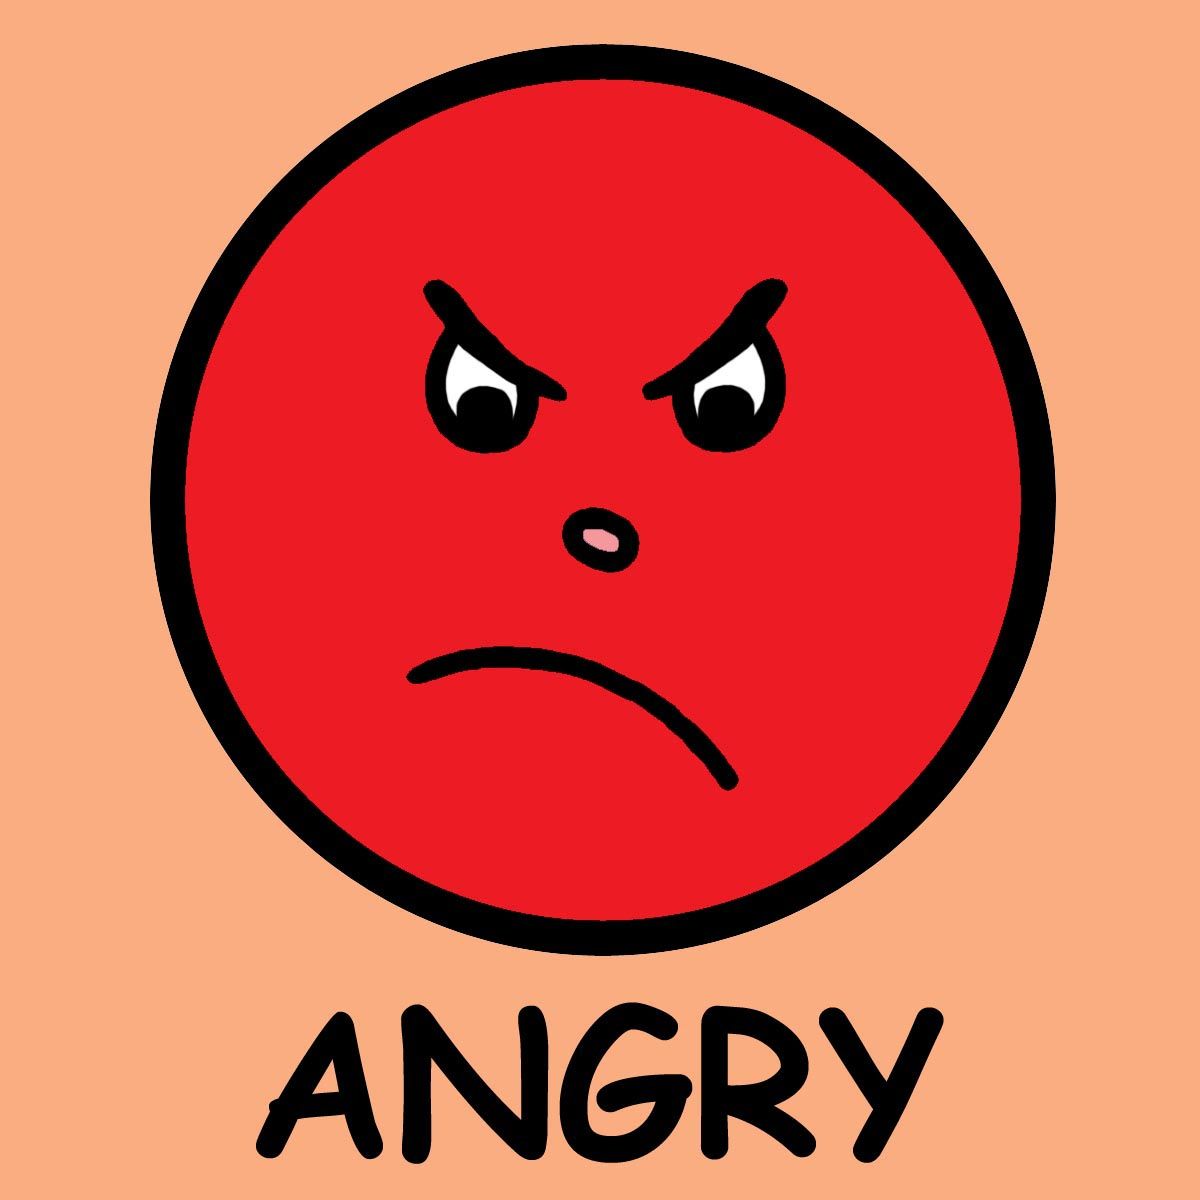 Images Of Angry Faces.